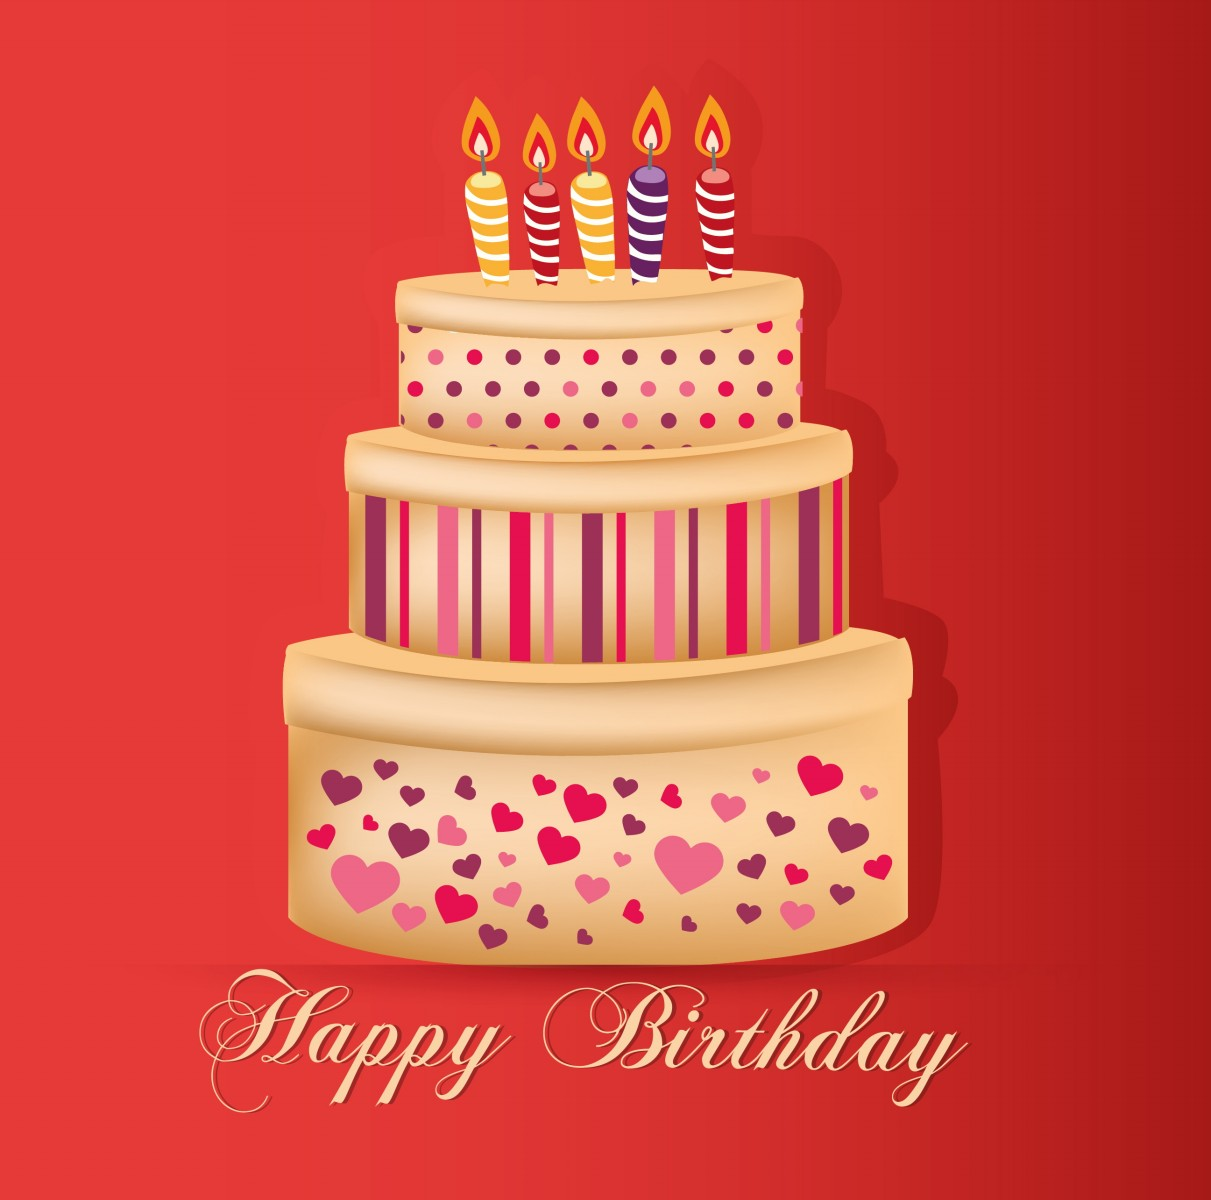 Big Cake Images For Birthday : Happy Birthday Wishes, Cards Images to Kids - ELSOAR